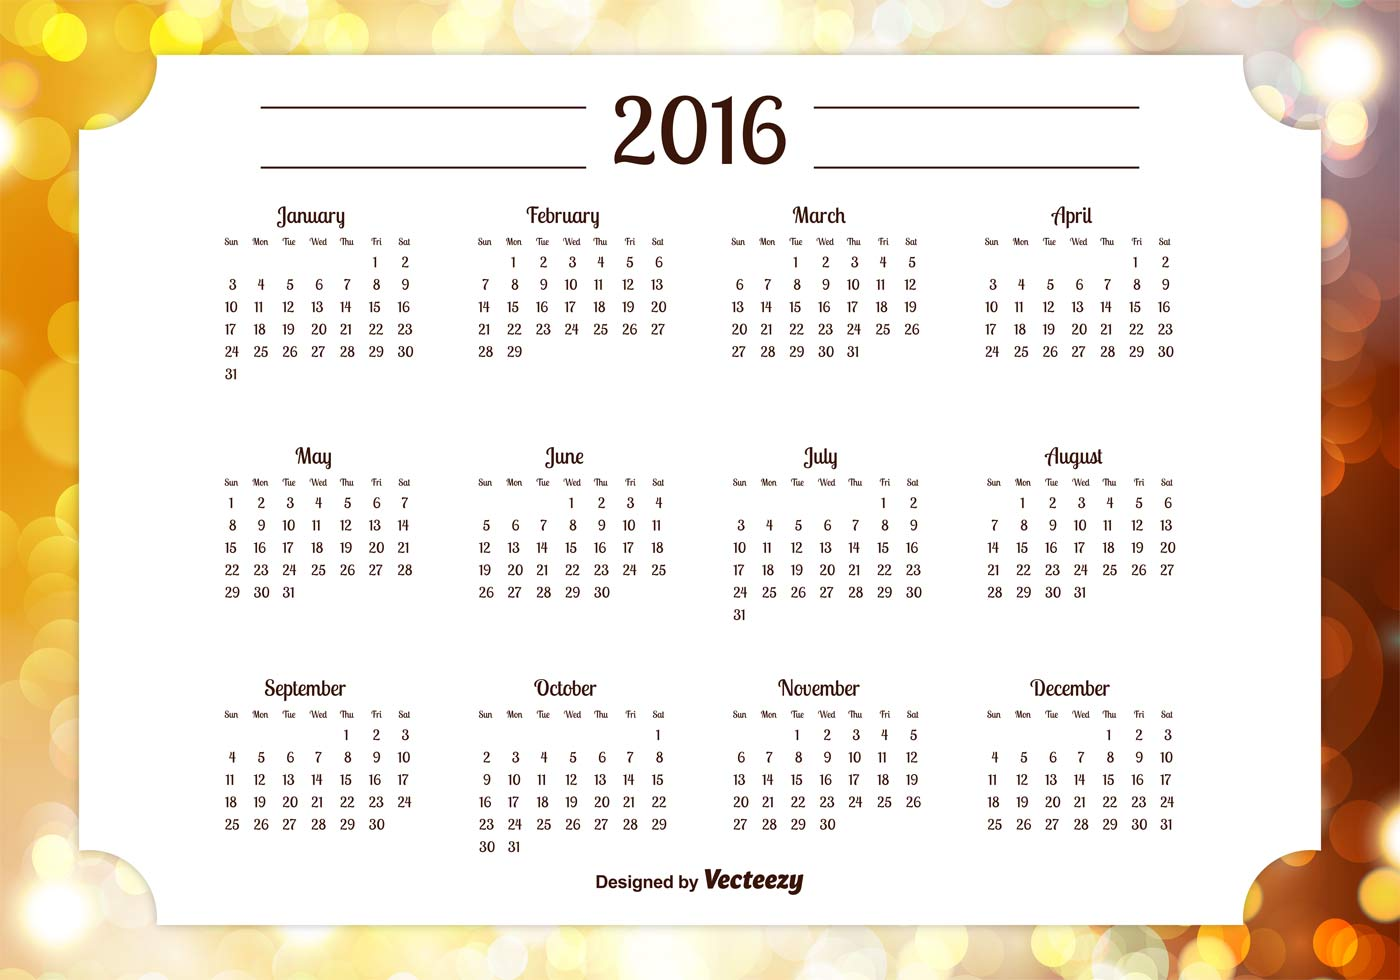 Calendar Illustration Vector : Calendar illustration download free vector art